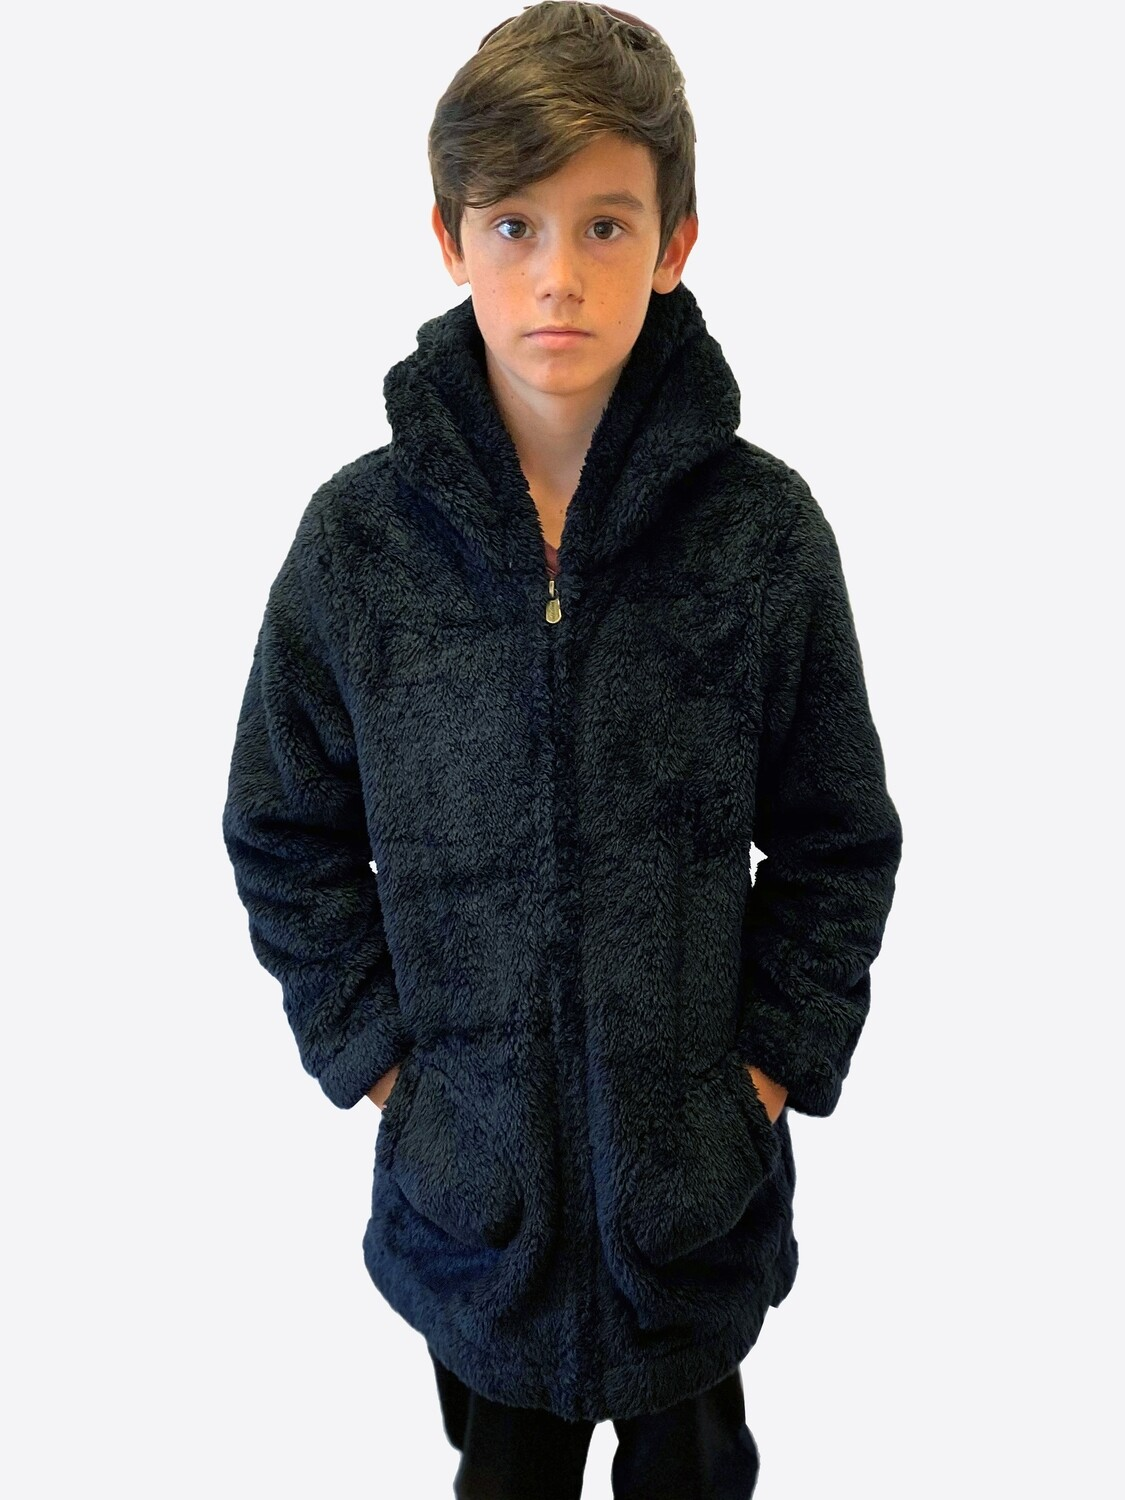 Switcher Hairy kids hooded sweater Mituq